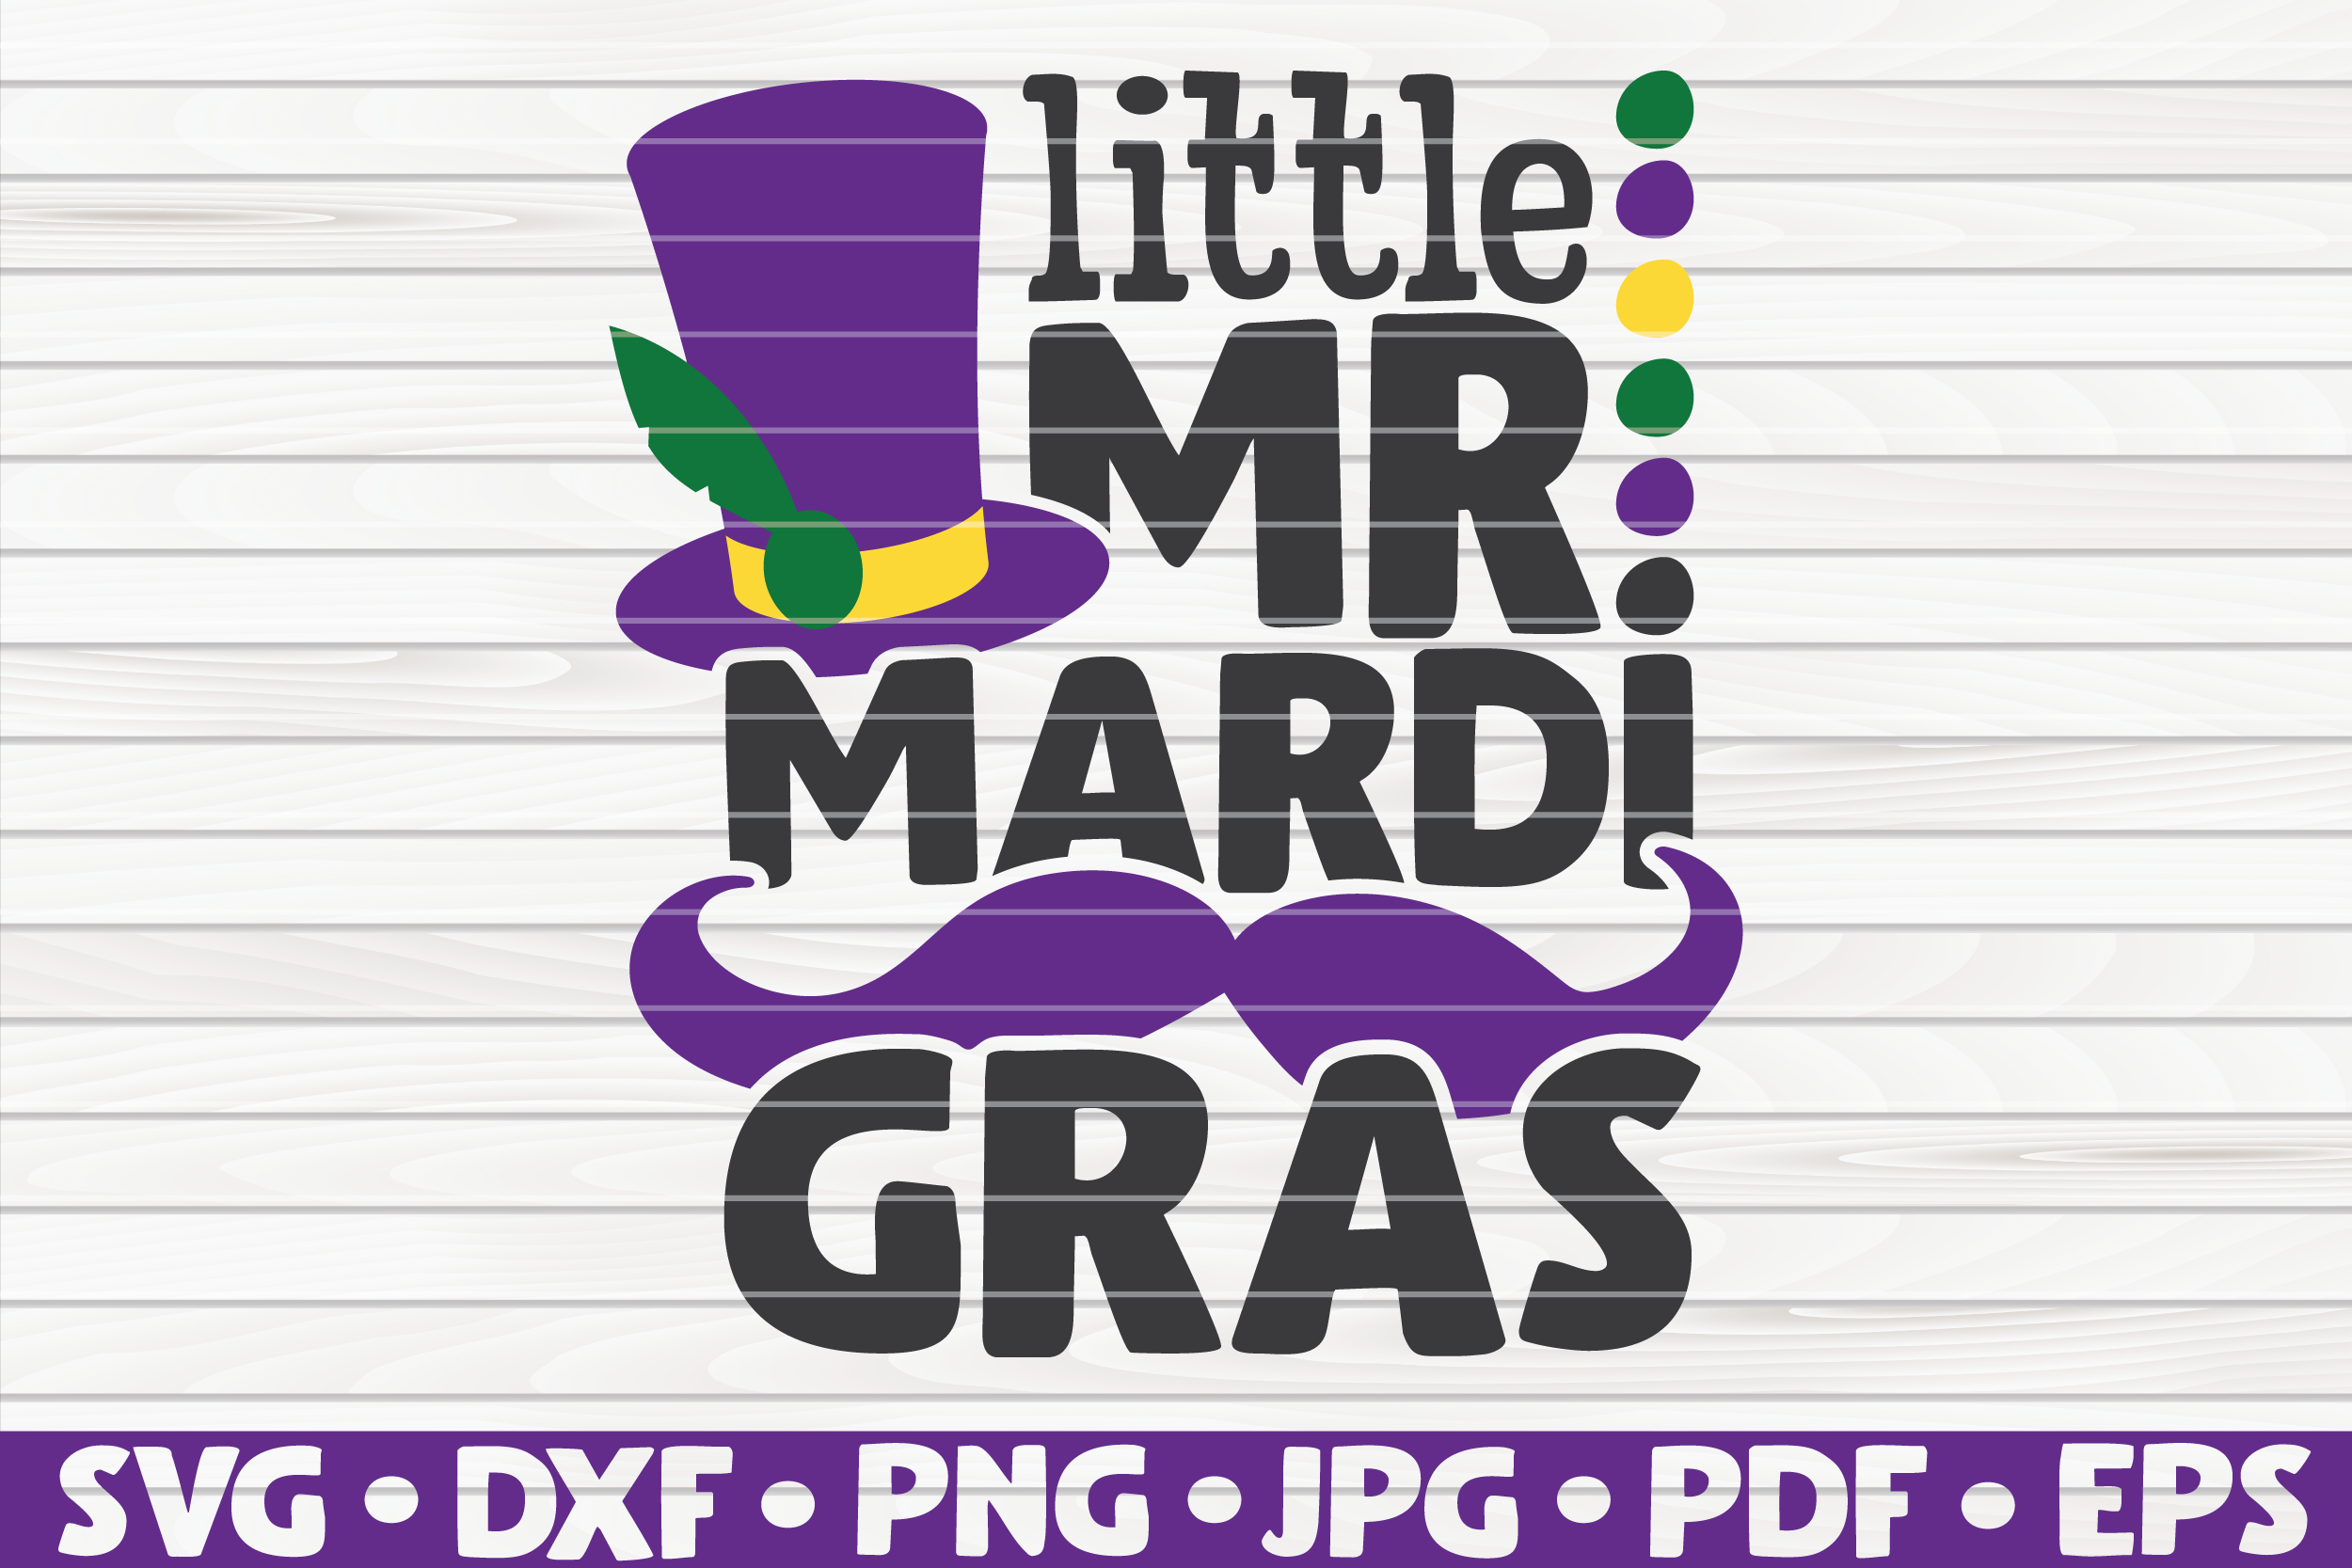 Download Free Little Mister Mardi Gras Graphic By Mihaibadea95 Creative Fabrica for Cricut Explore, Silhouette and other cutting machines.